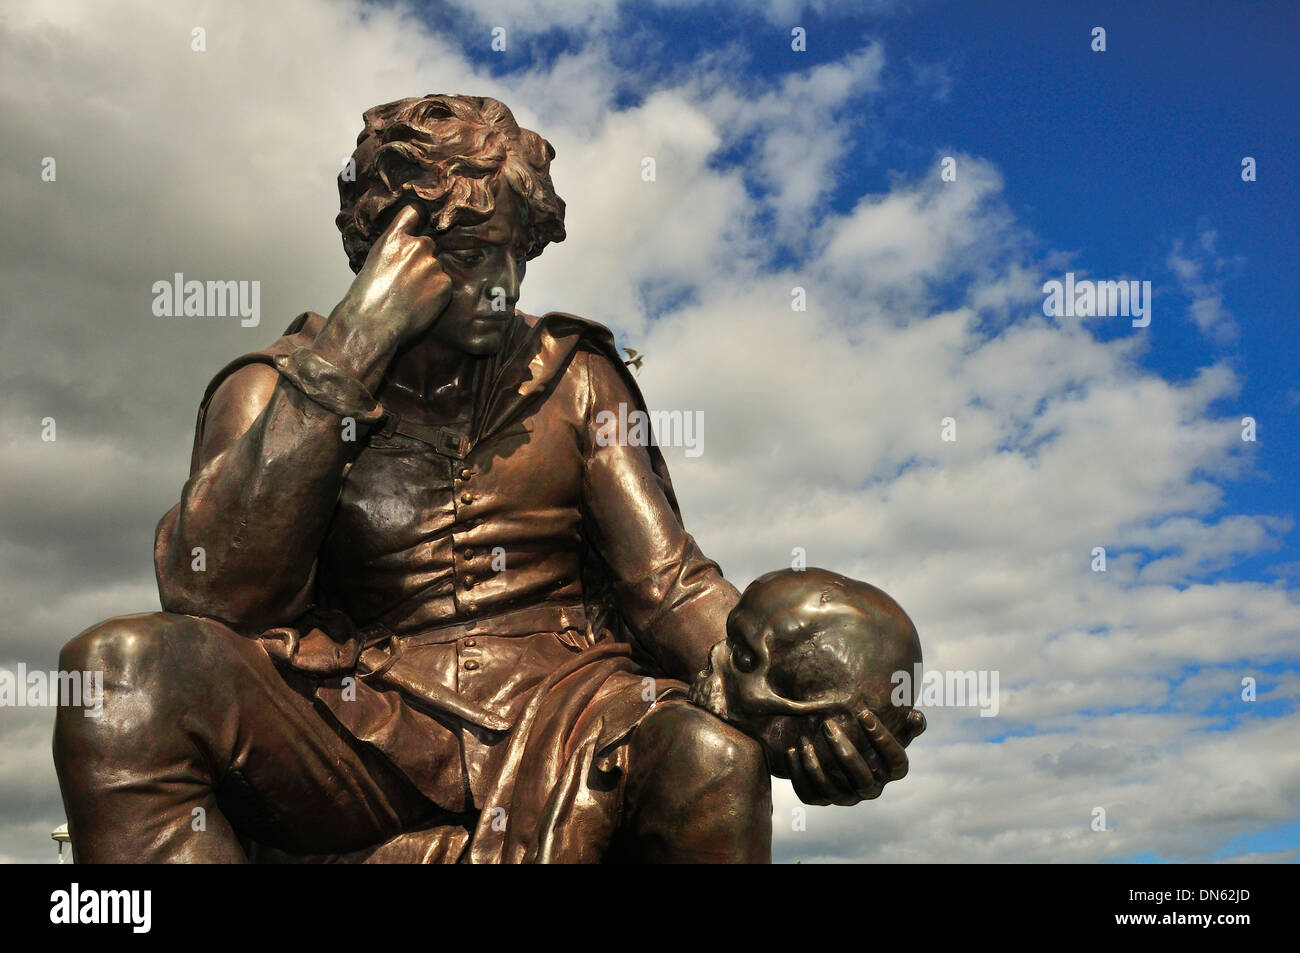 Statue of Hamlet, Stratford-upon-Avon, Warwickshire, England, United Kingdom - Stock Image